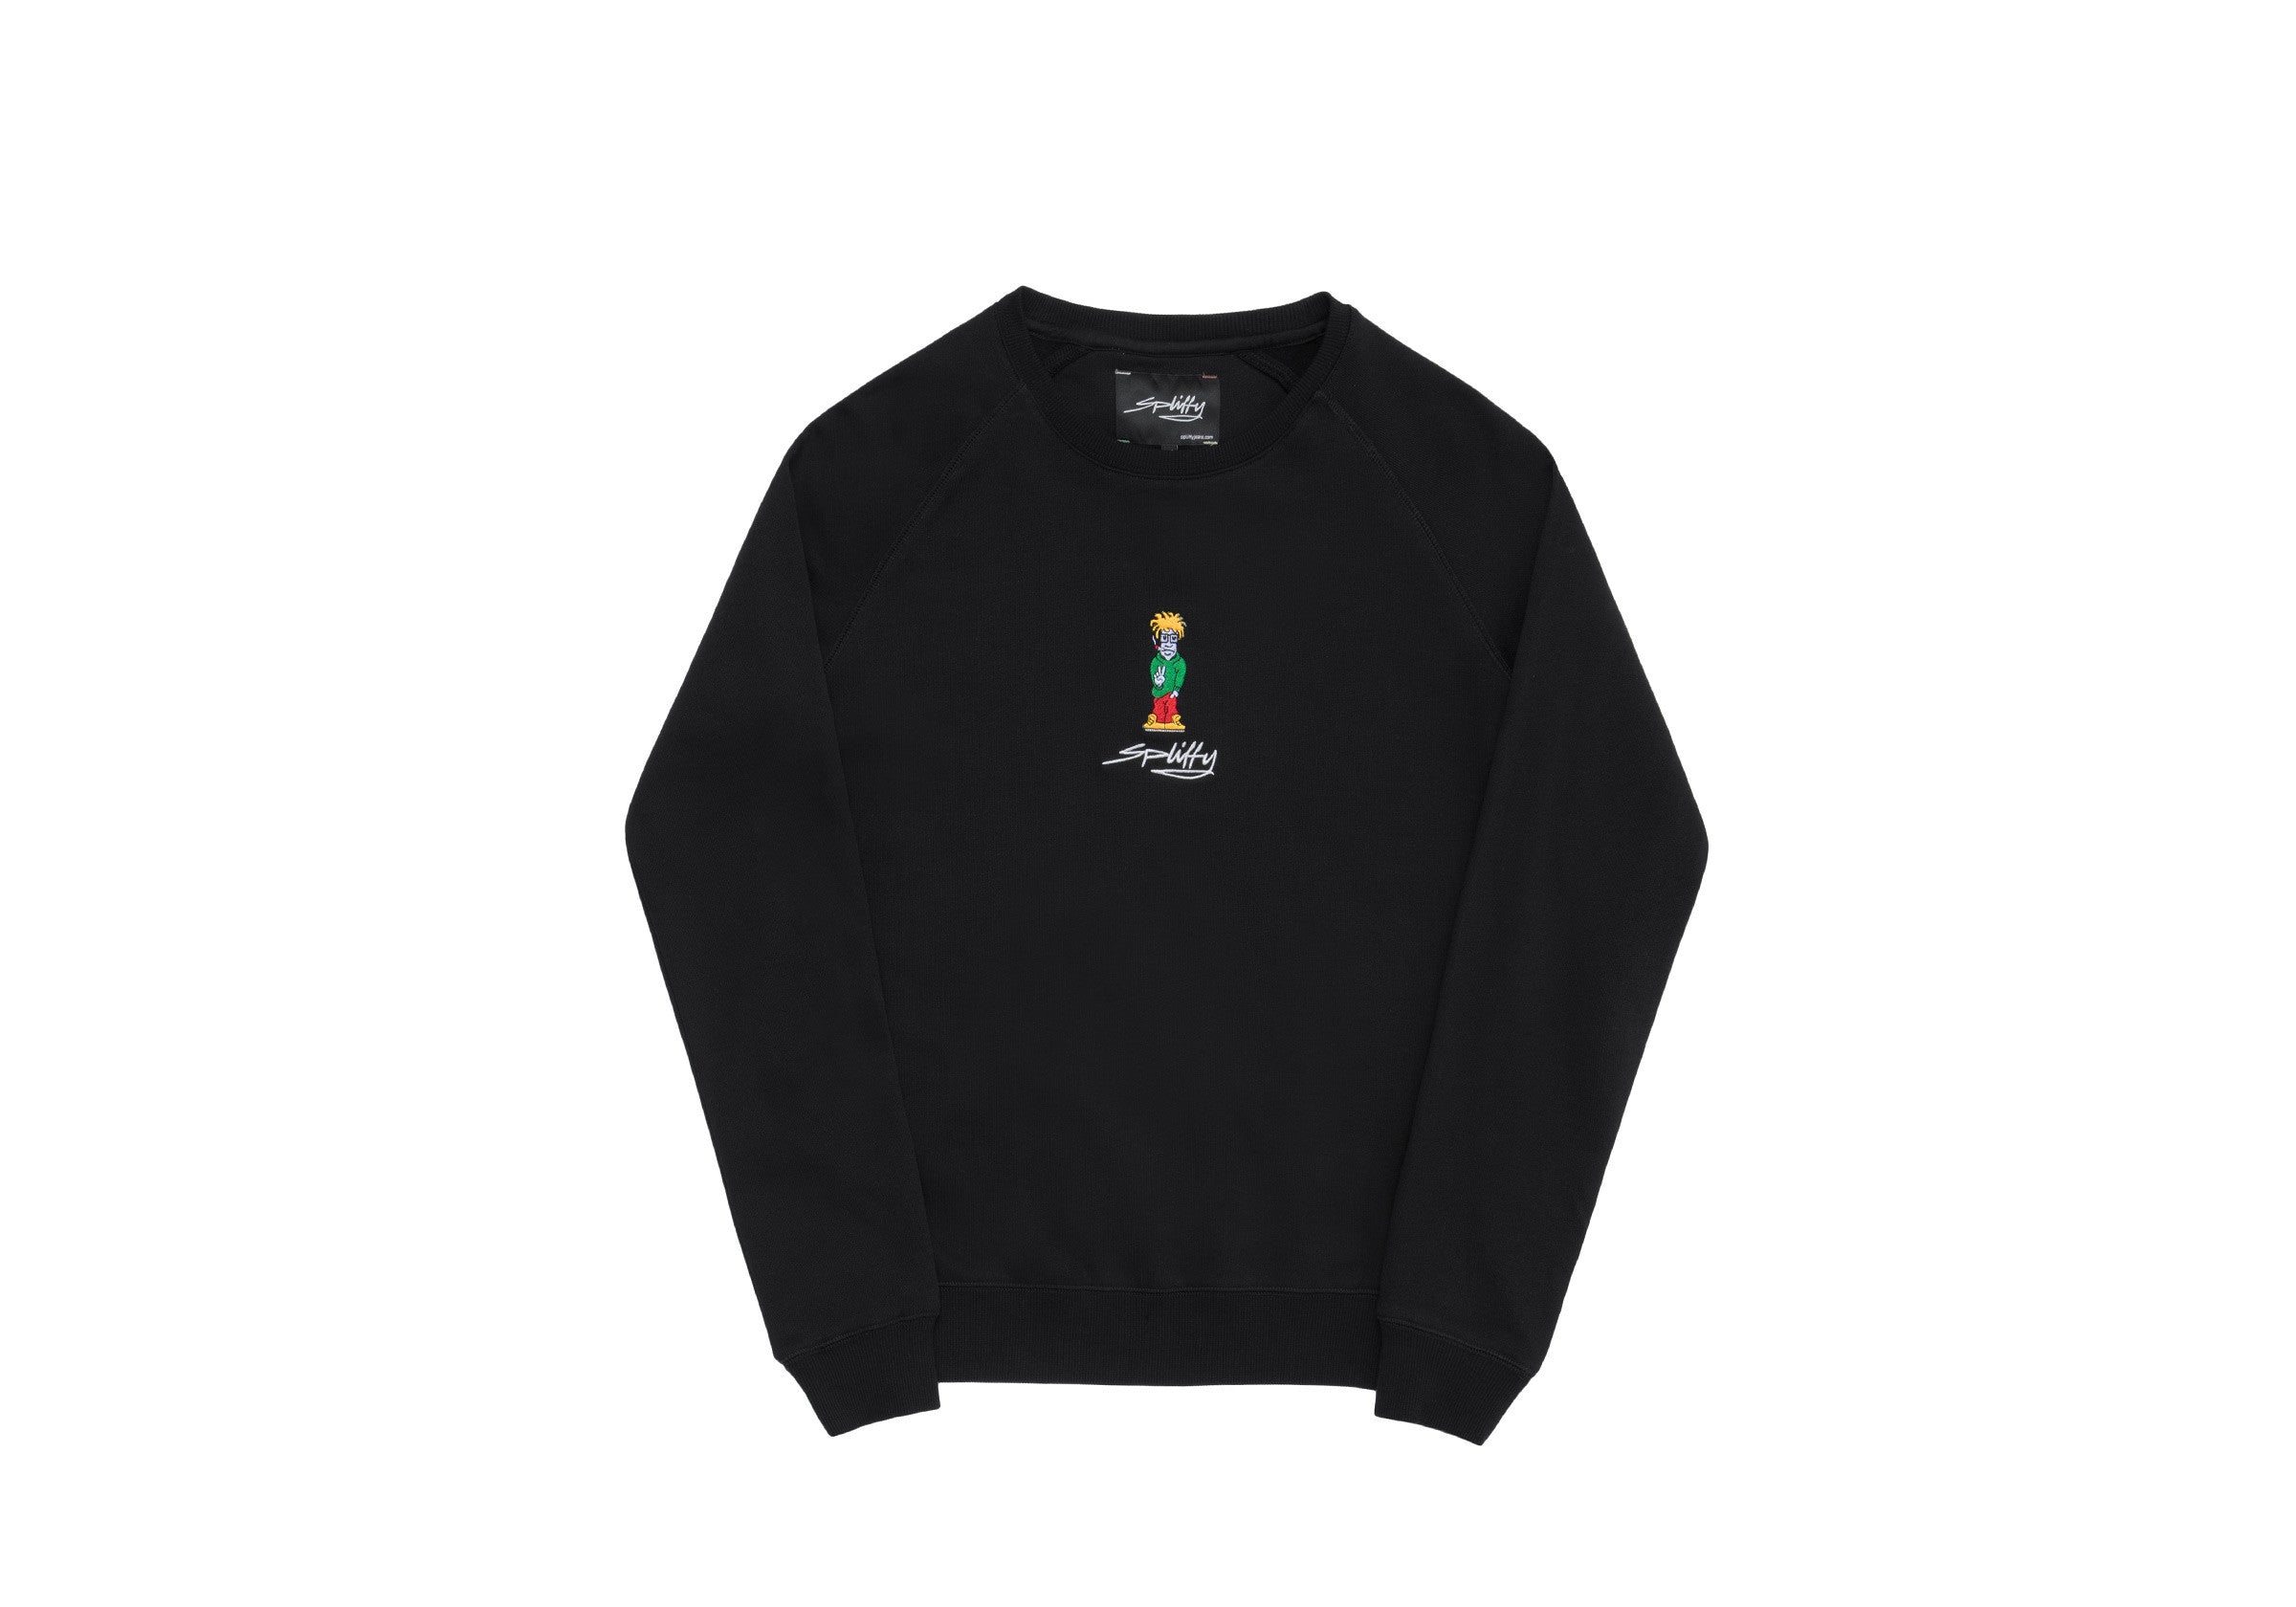 Spliffy Sweater - Black